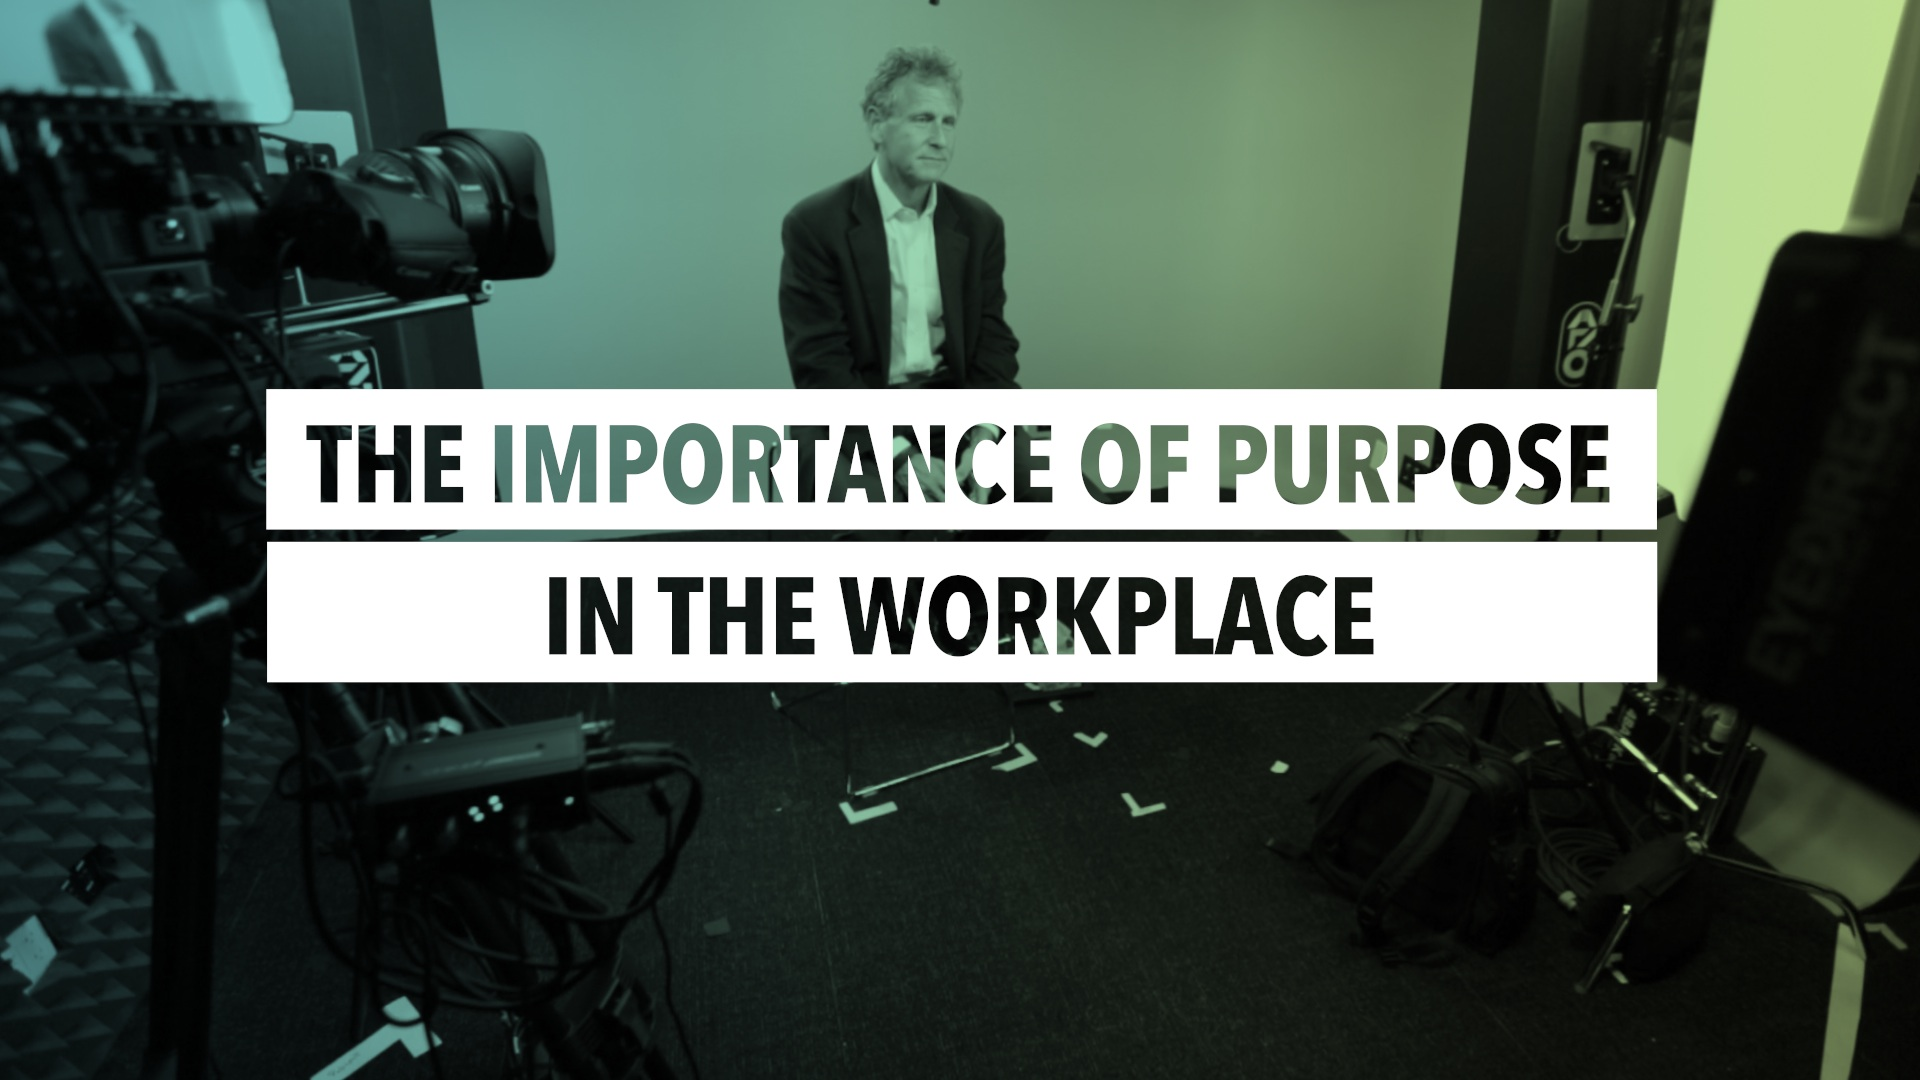 Develop a career playbook: The Importance of Purpose in the Workplace